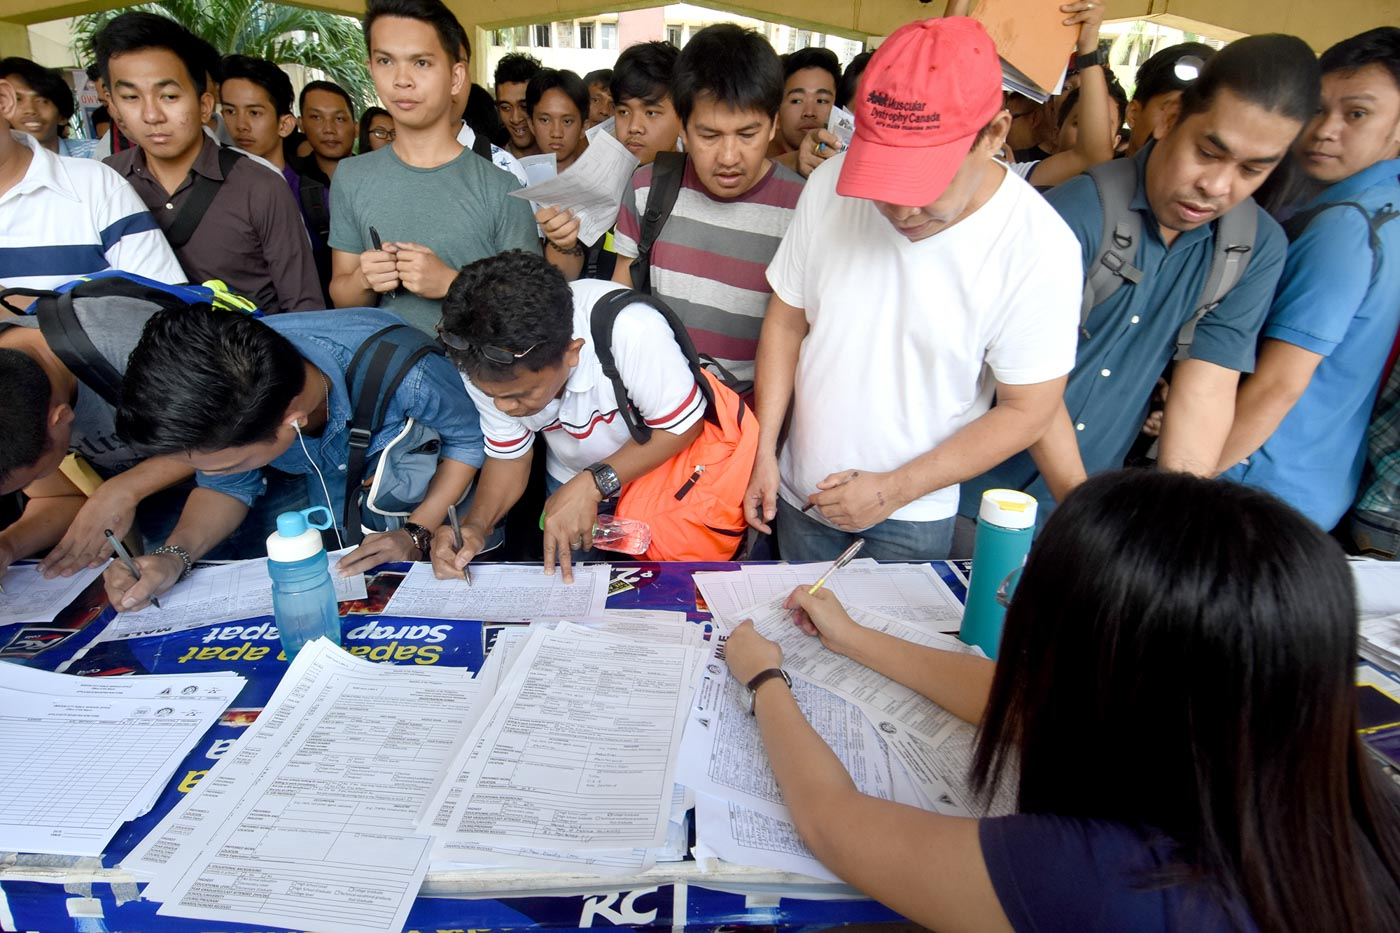 NO ROOM ENOUGH. Jobseekers from Metro Manila and nearby provinces line up at DOLE Job Fair. Photo by Angie de Silva/Rappler